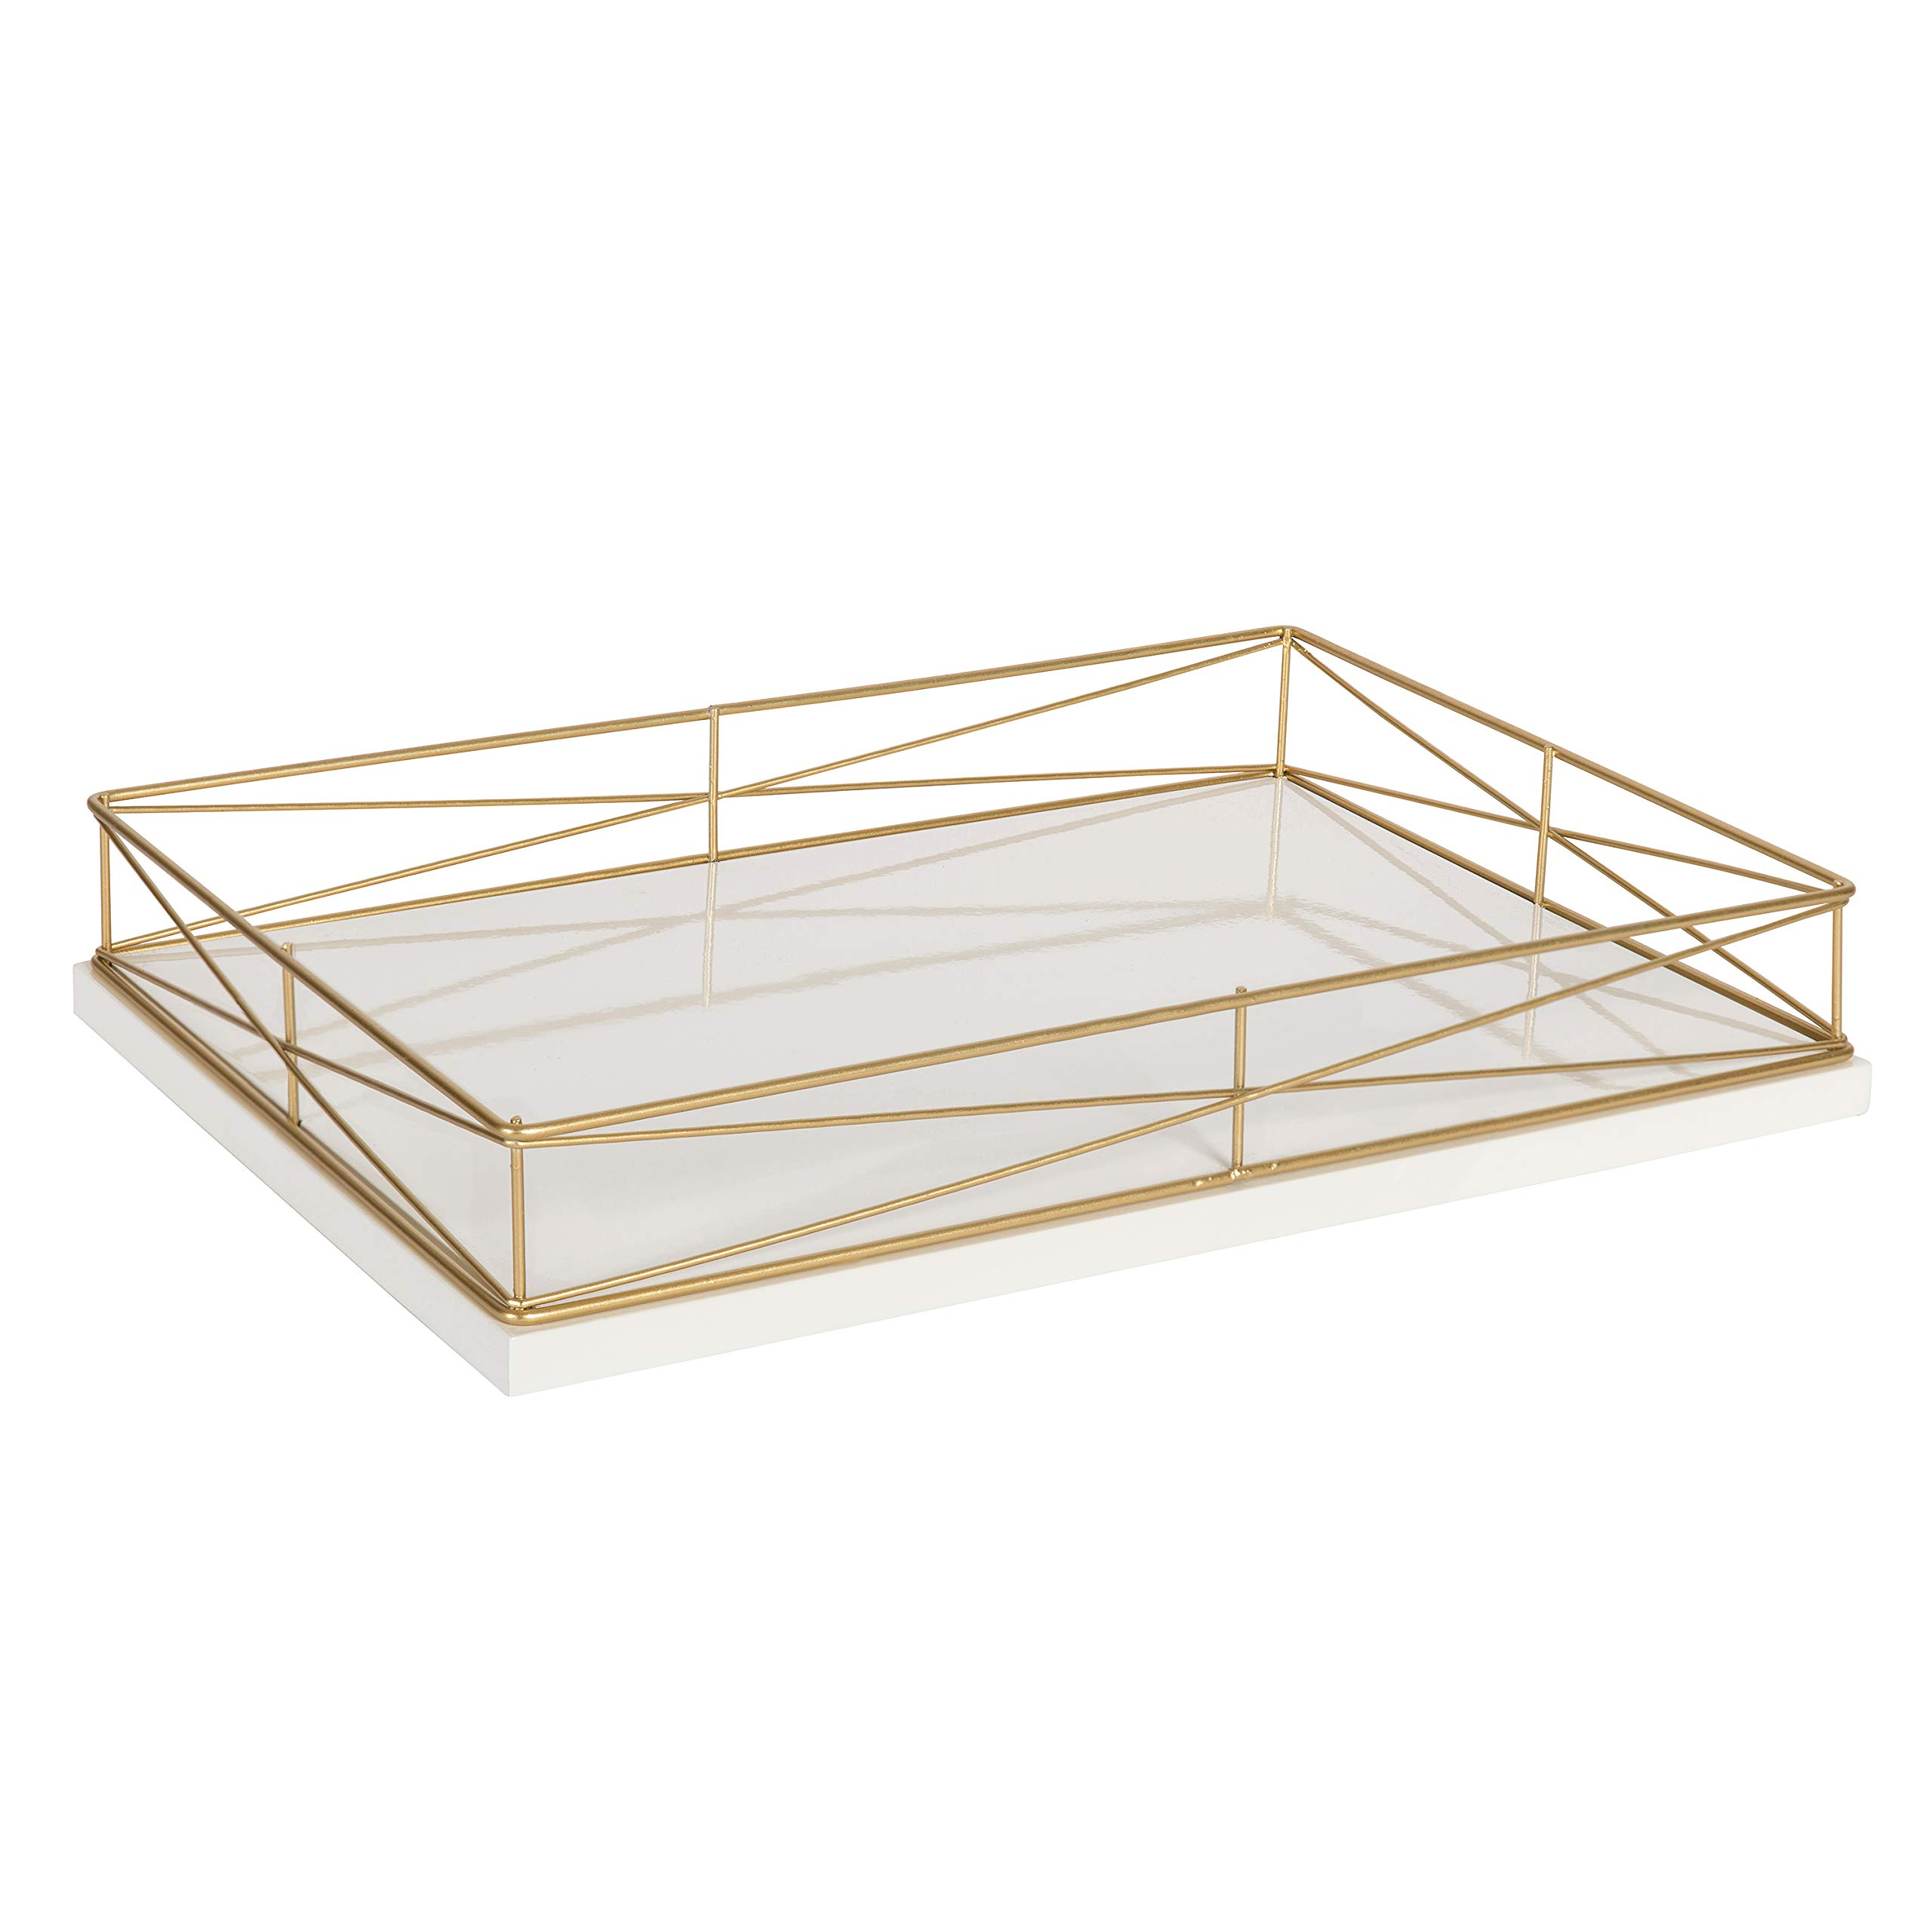 Kate and Laurel Mendel Rectangle Tray with Decorative Metal Rim, 12x16.5 White by Kate and Laurel